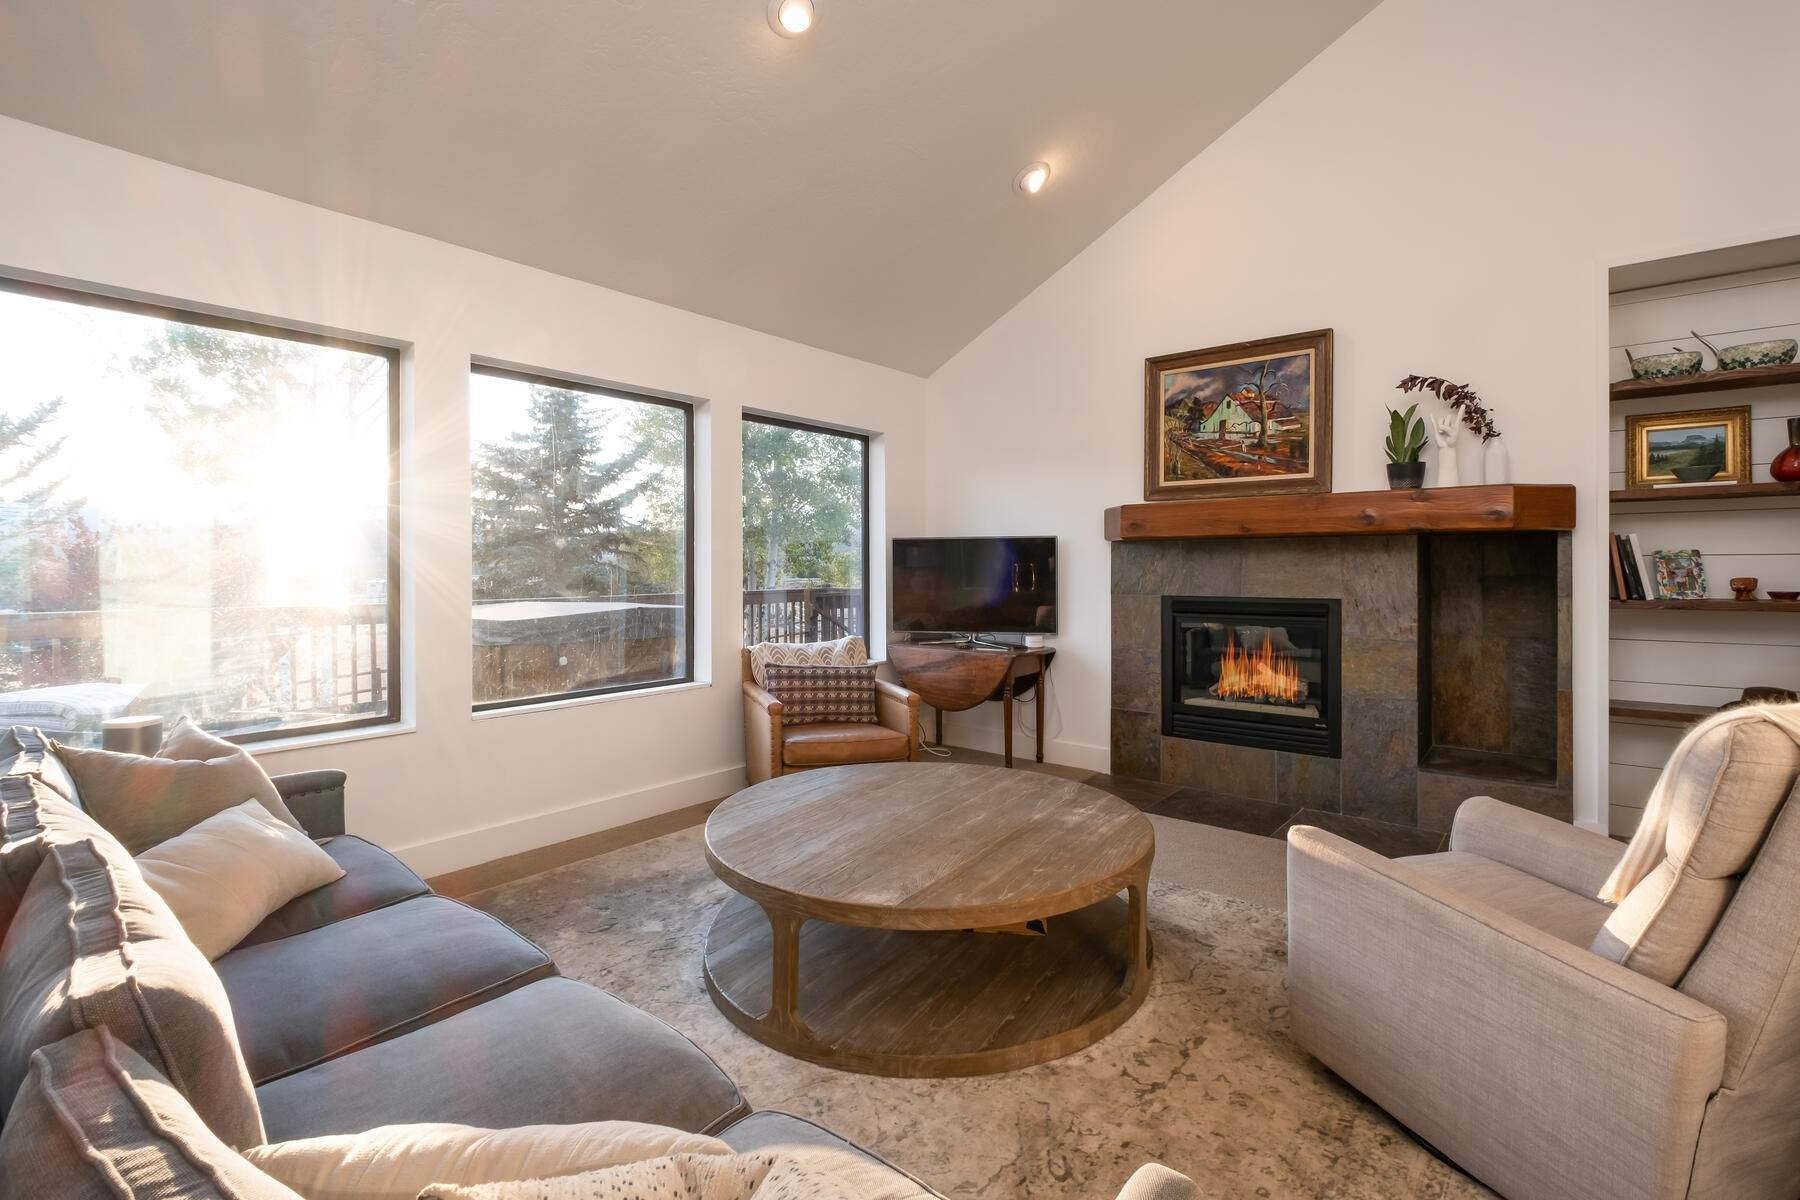 4. Single Family Homes for Sale at Space, Privacy and Views in Silver Creek 959 E Echo Lane Park City, Utah 84098 United States